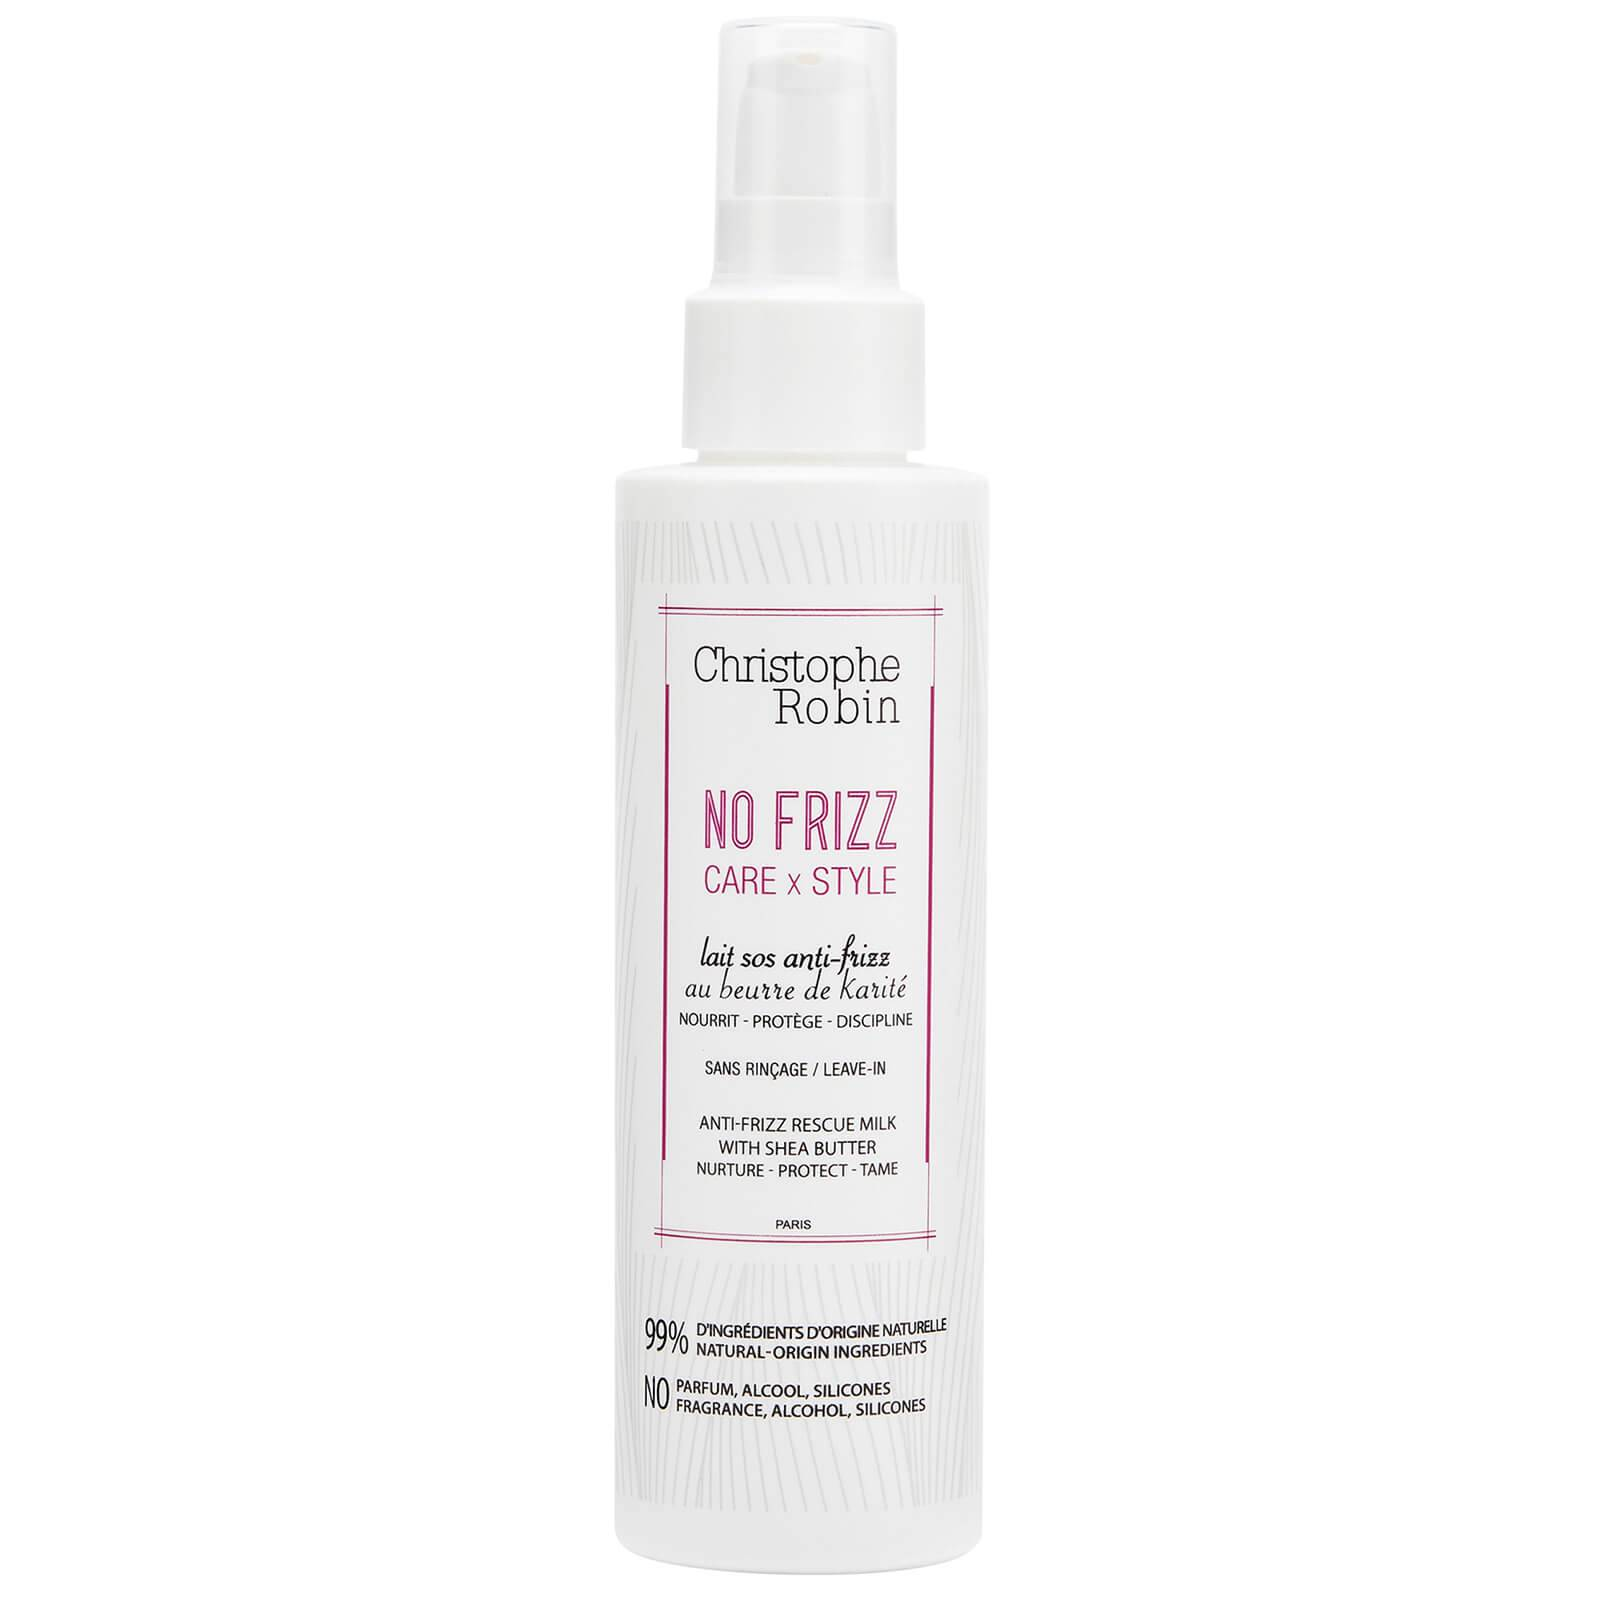 Christophe Robin Lait SOS Anti-frizz